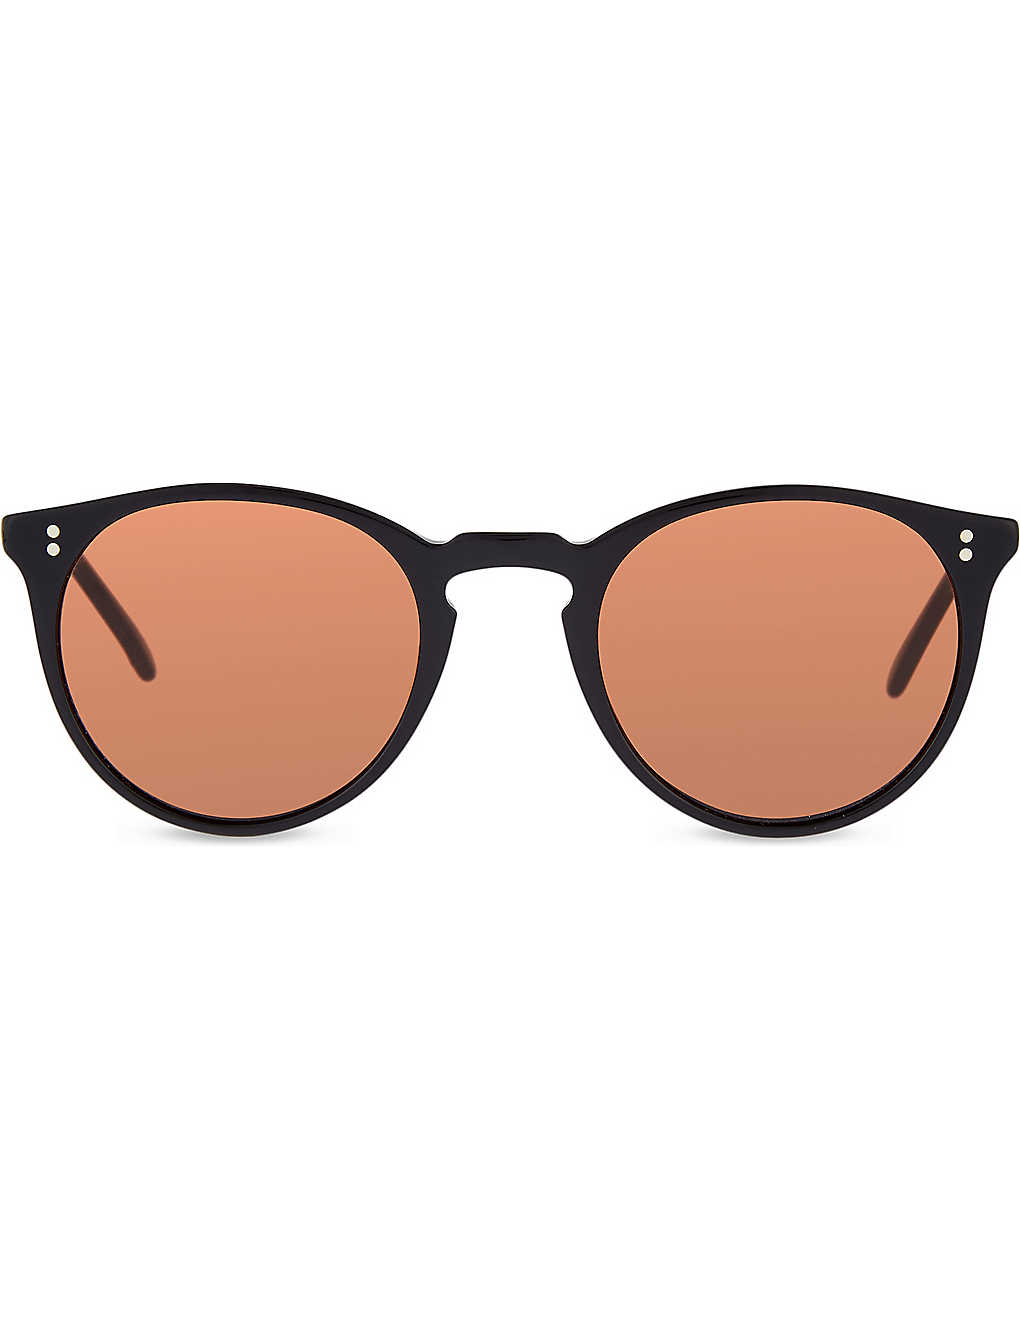 08d6ef6ee85 OLIVER PEOPLES - OV5183SM The Row O Malley NYC round sunglasses ...